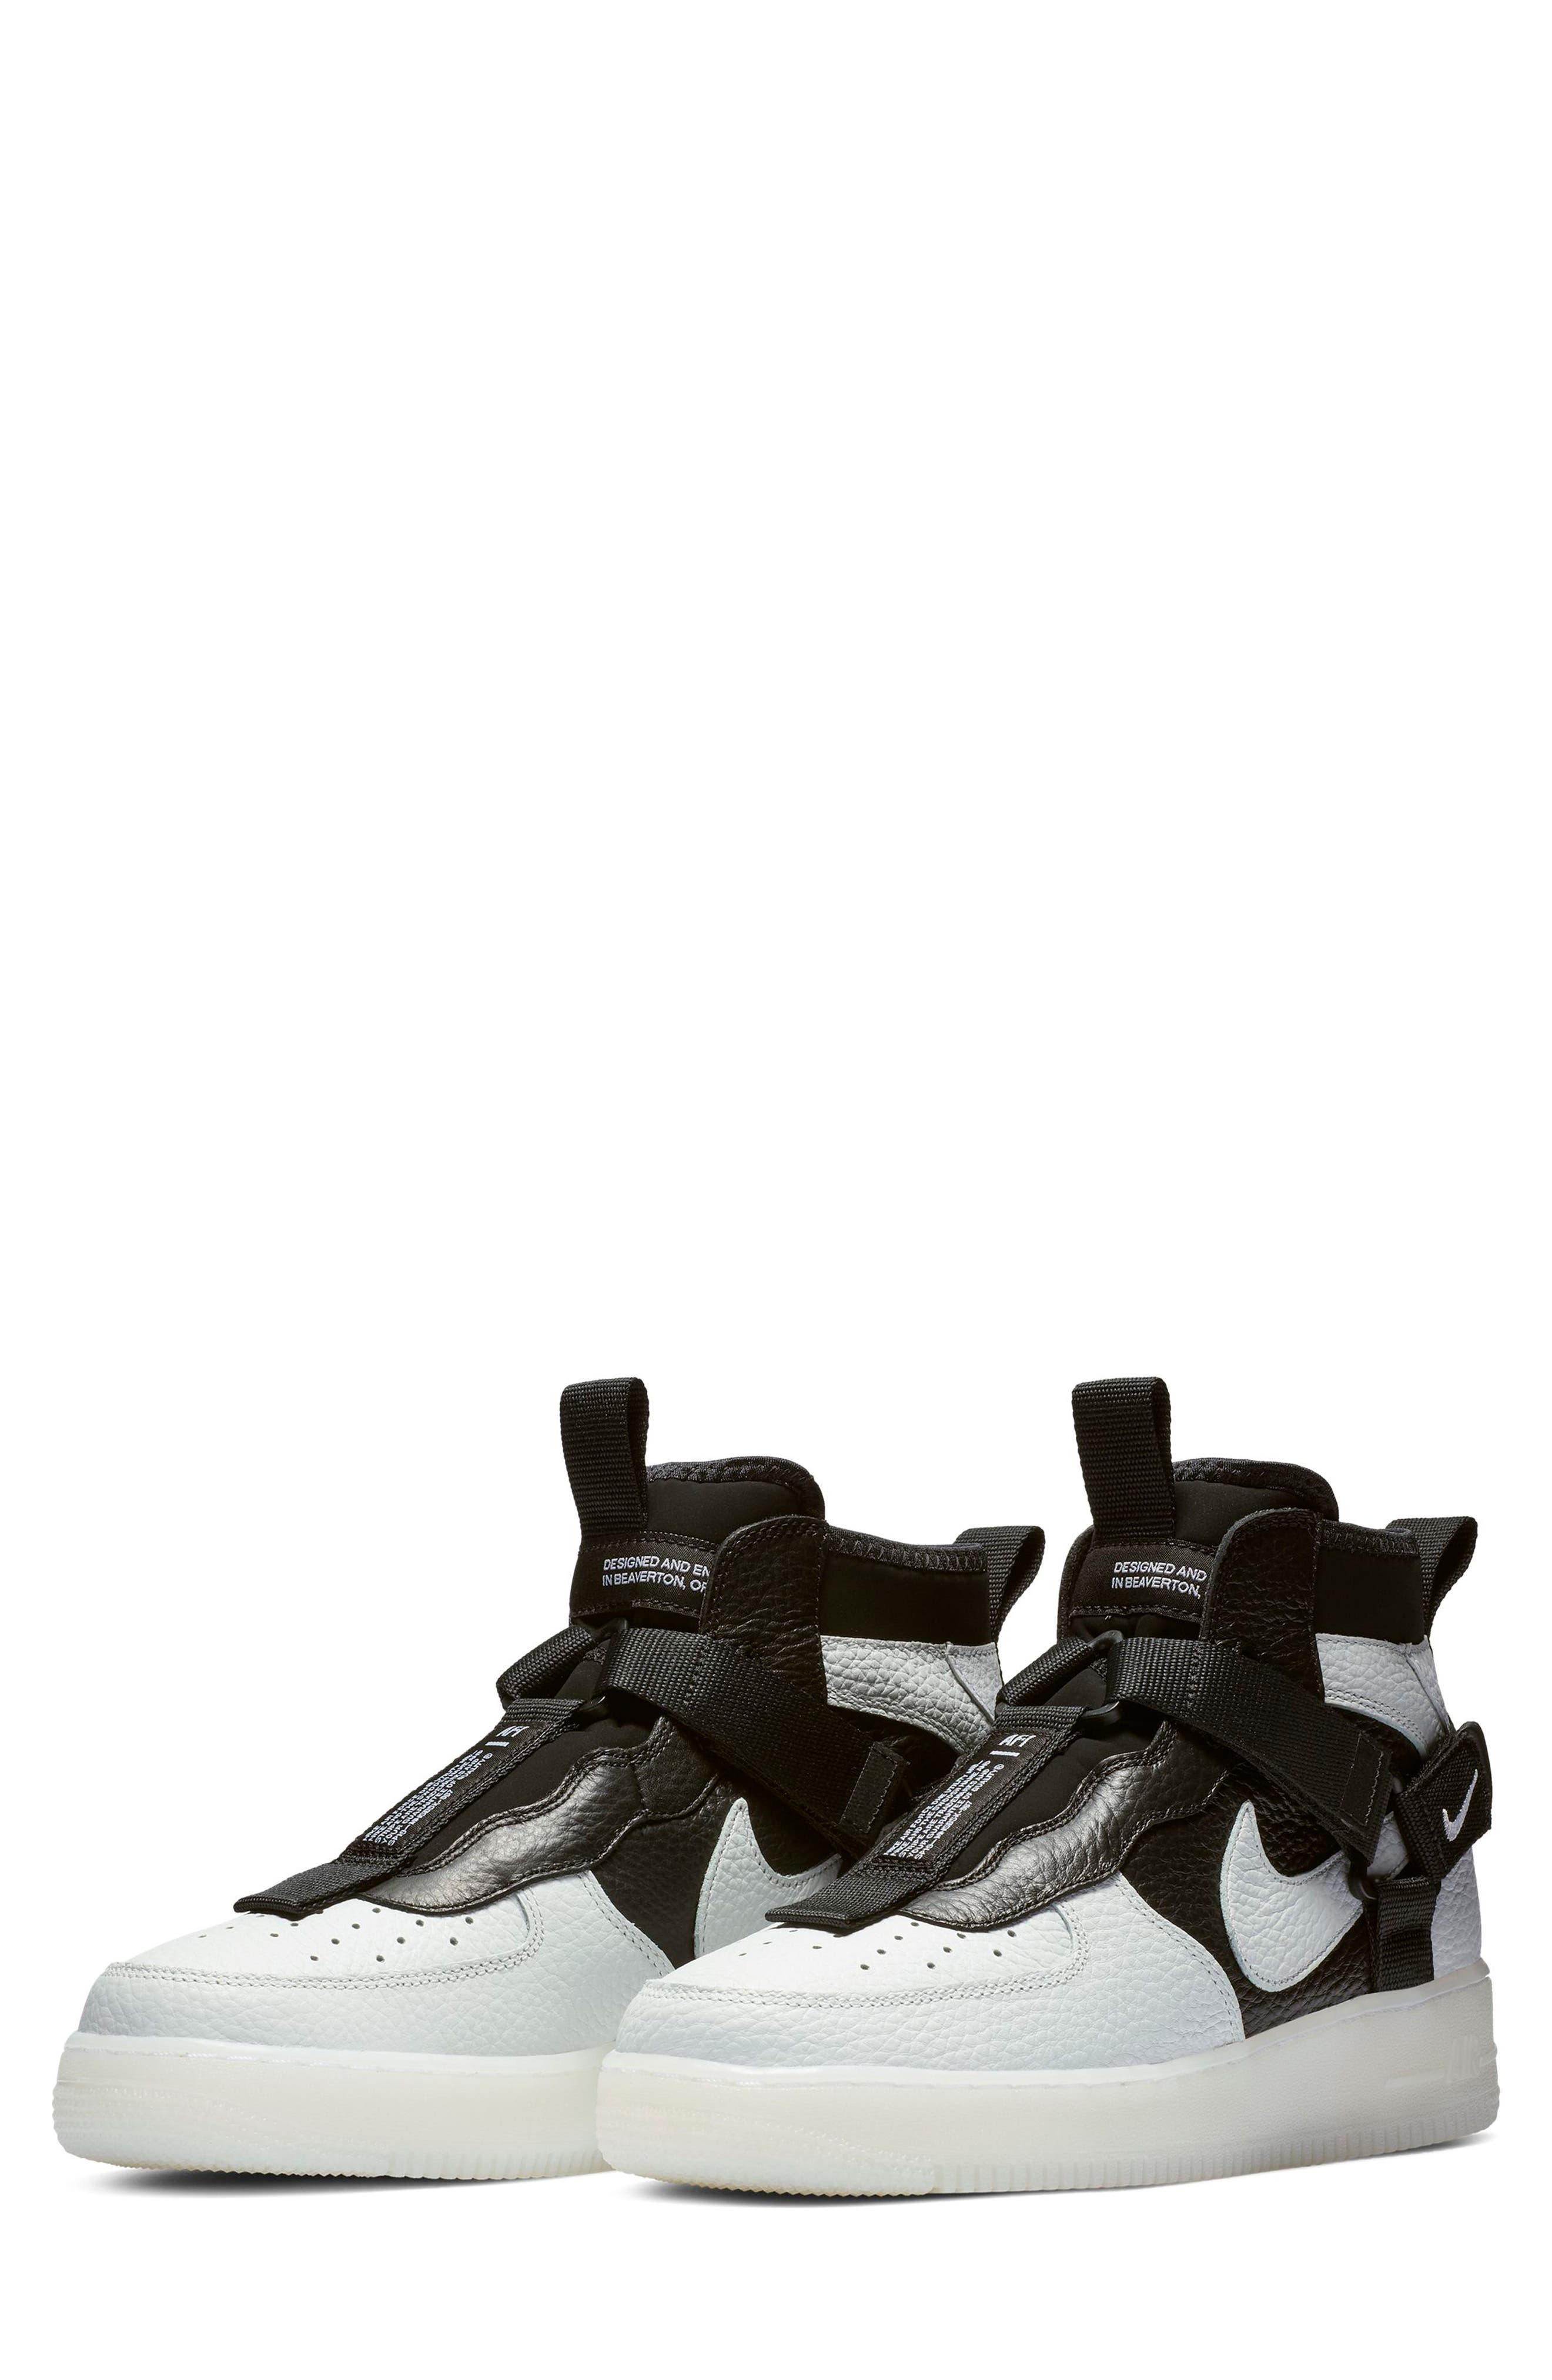 NIKE Air Force 1 Utility Mid Sneaker, Main, color, OFF WHITE/ BLACK/ WHITE